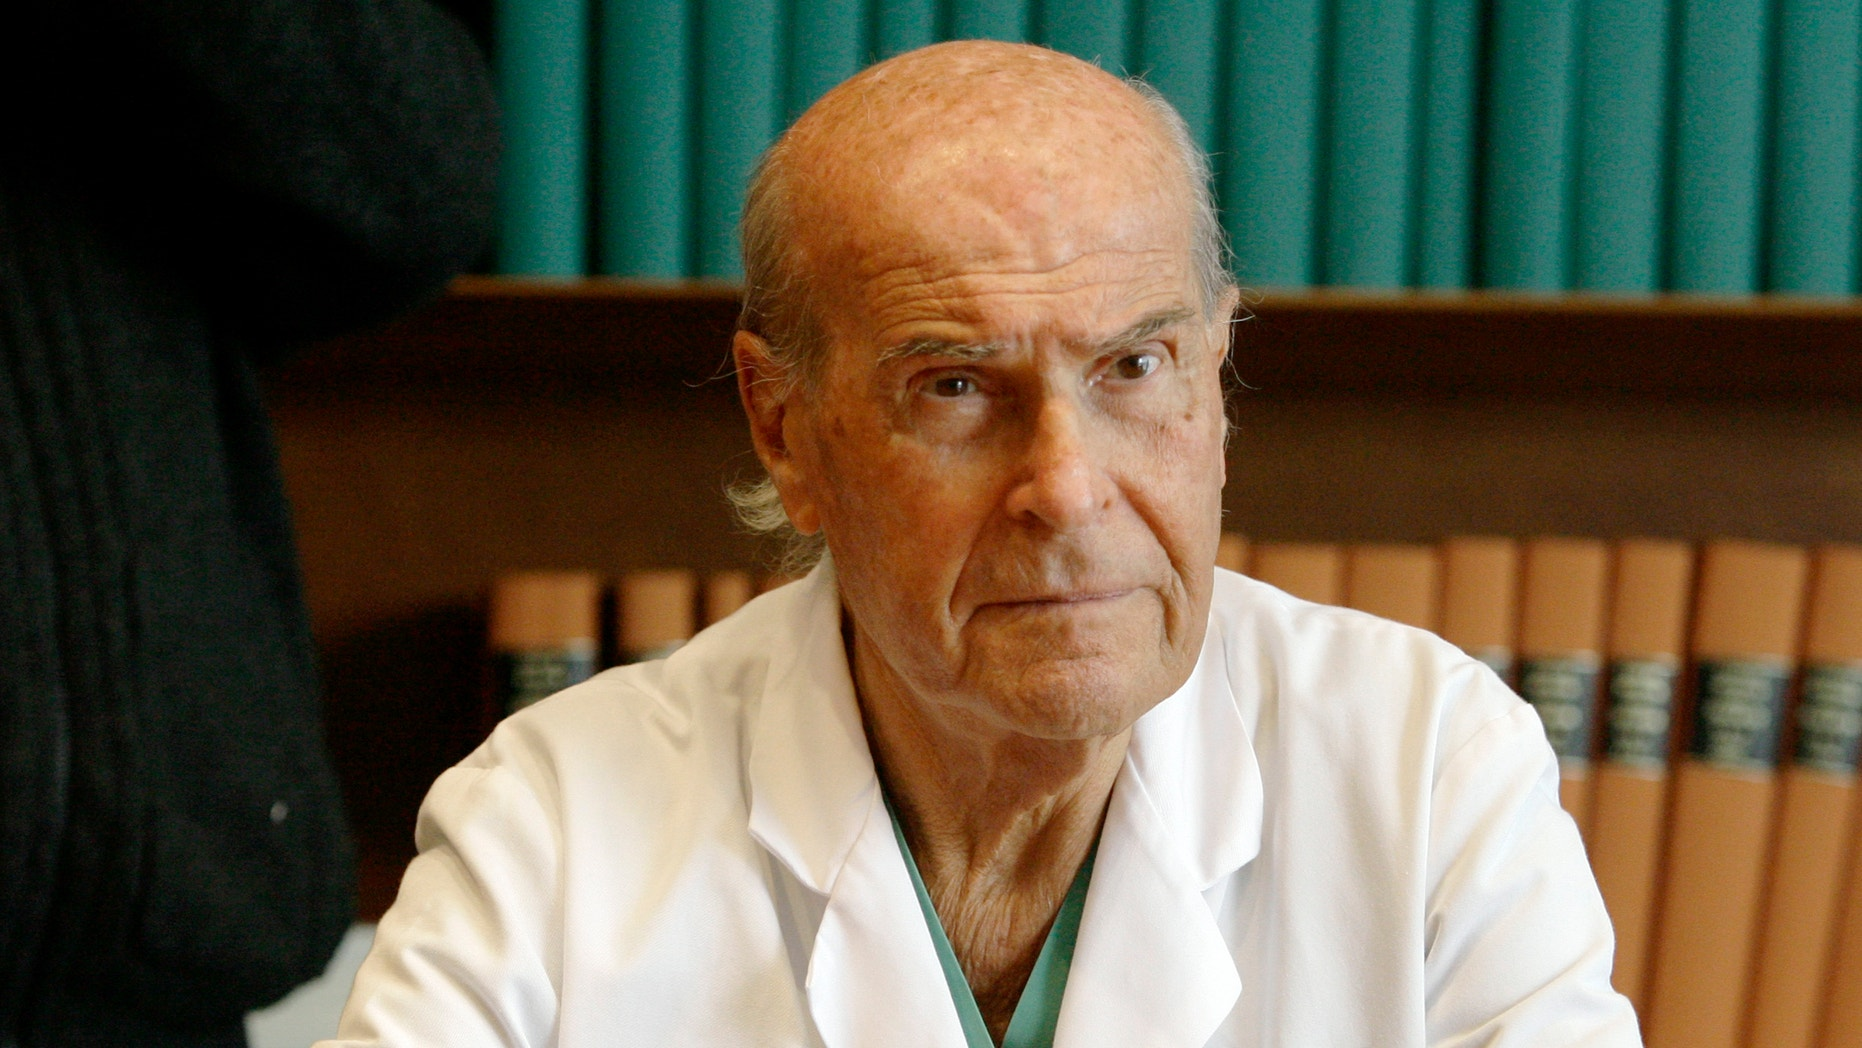 In this photo taken on Tuesday, Nov. 20, 2007, Umberto Veronesi attends a press conference at the 'Istituto Oncologico Europeo' the Italian cancer research Institute, in Milan, Italy. Veronesi, an internationally known oncologist who also served as Italian Minister of health has died in Milan, Italy, Tuesday, Nov. 8, 2016. He was 90.